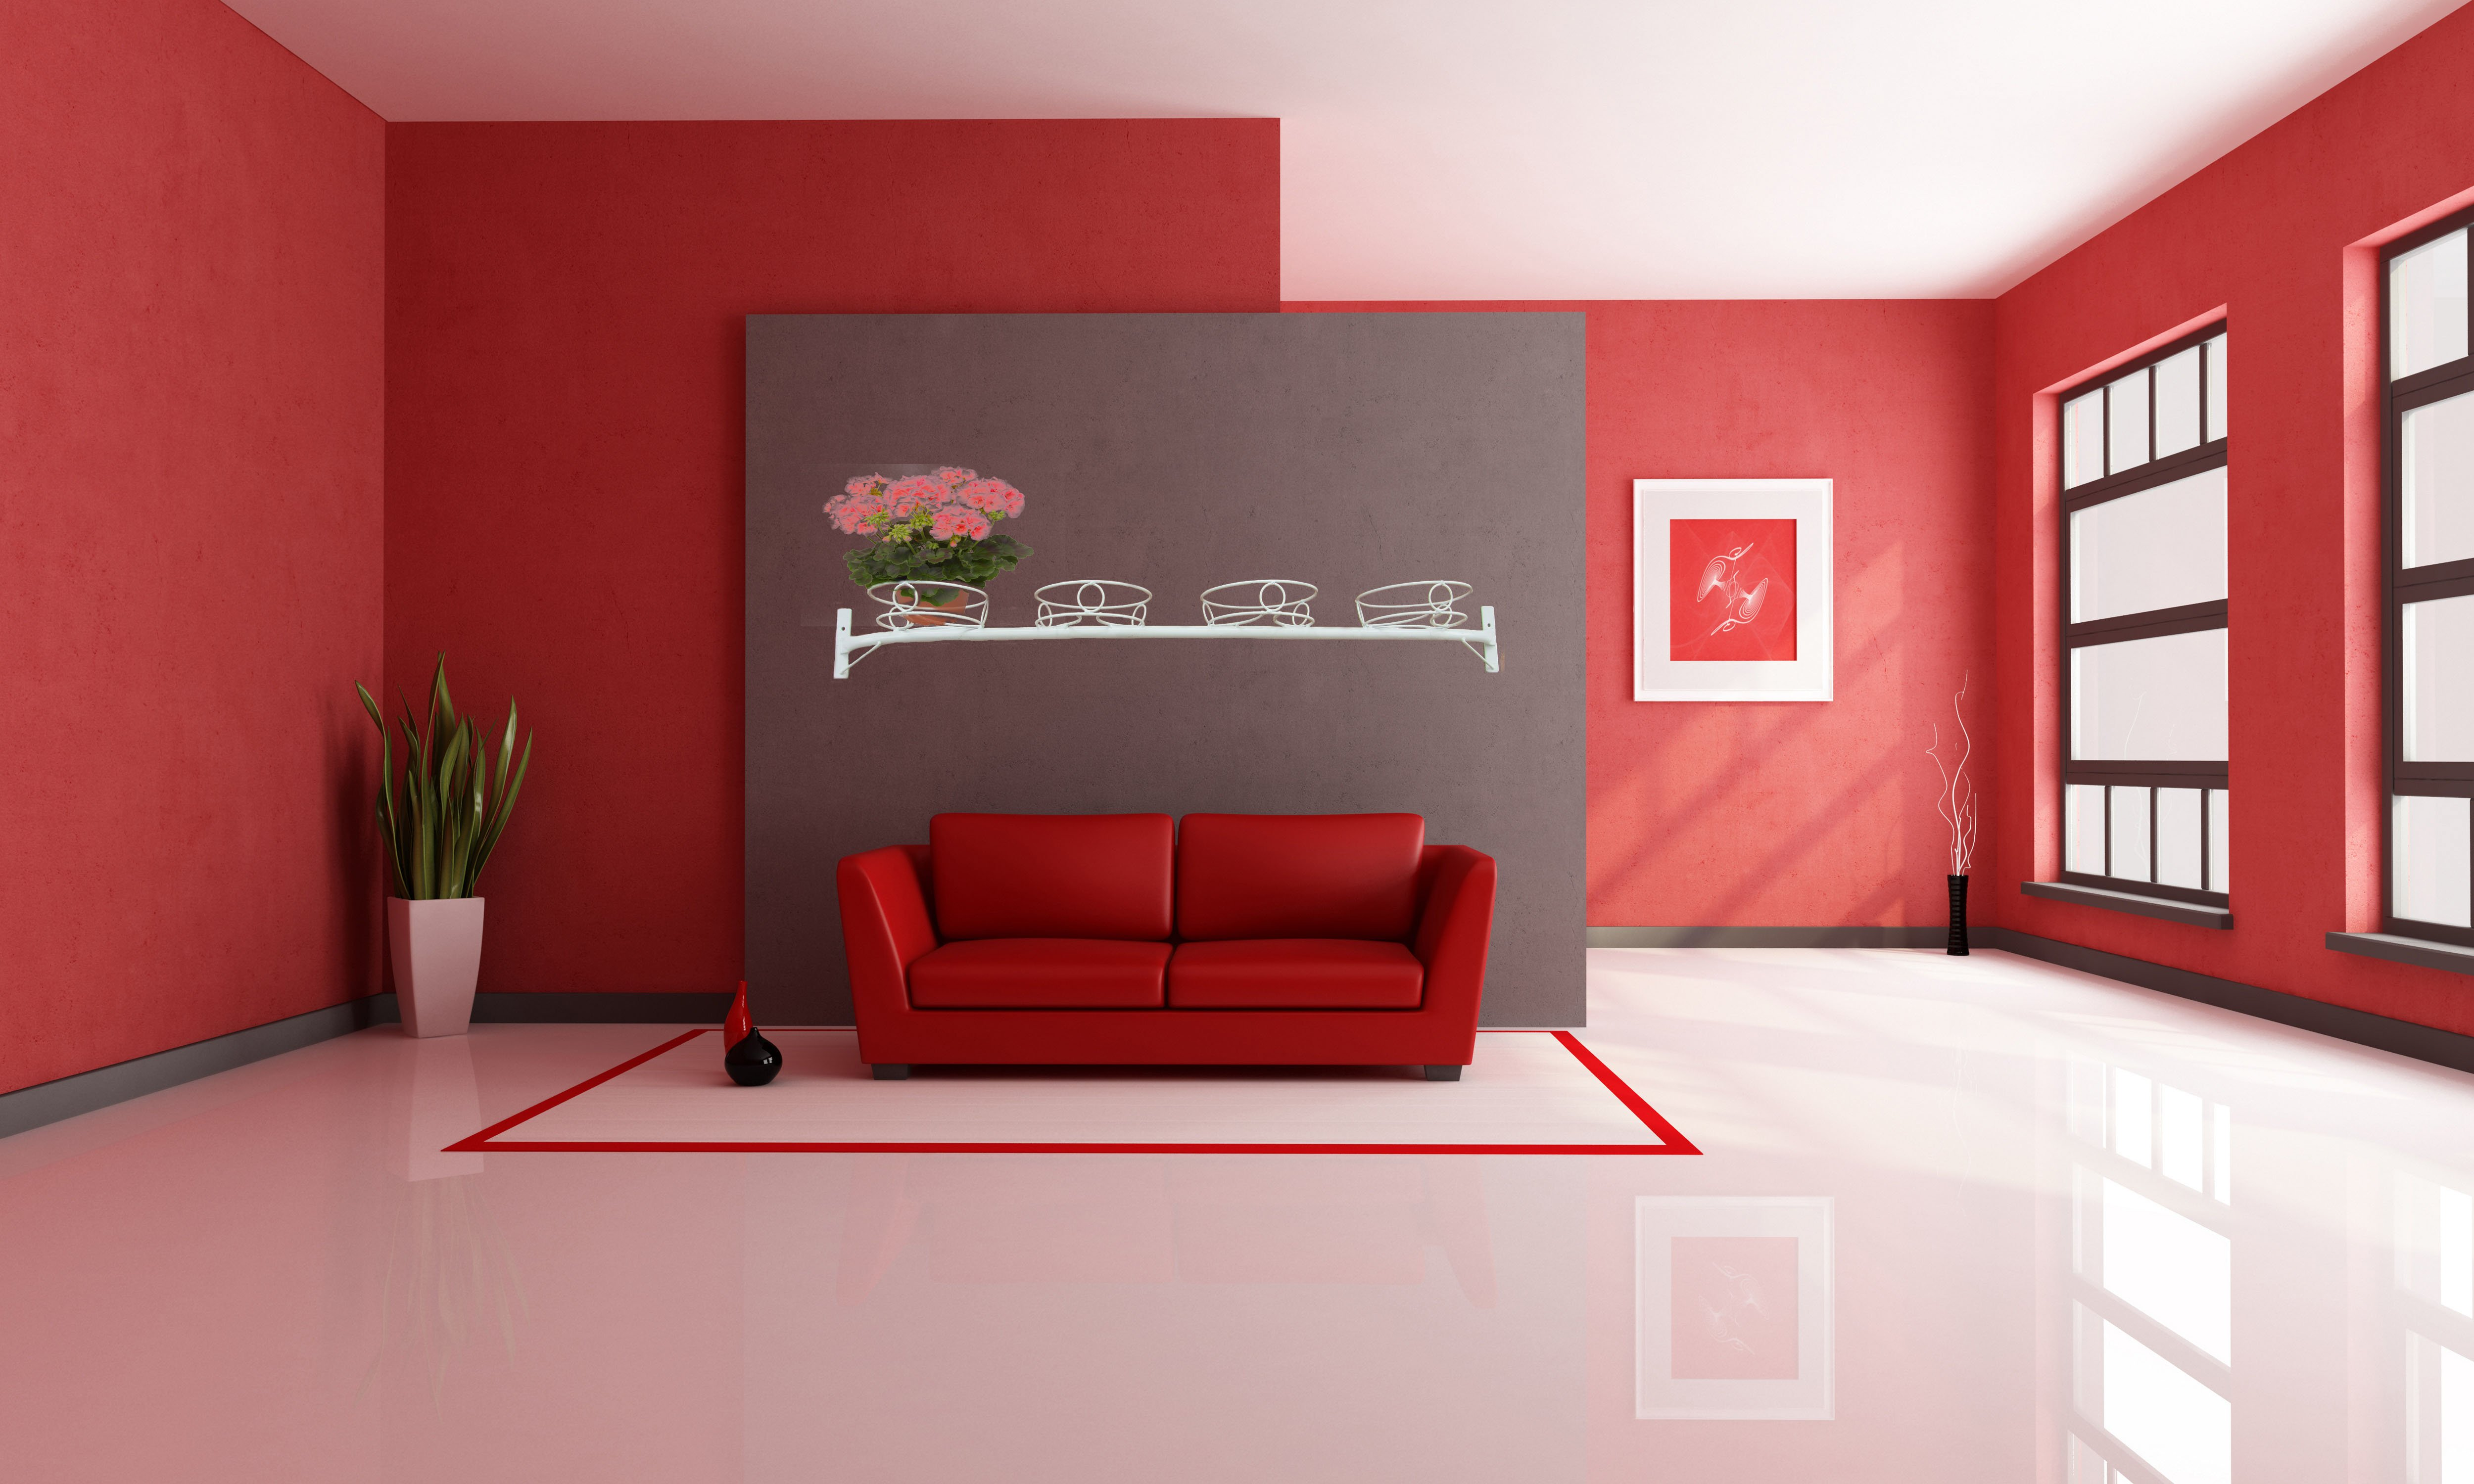 Interior Design Room Uncover More Picture And Concepts Find The